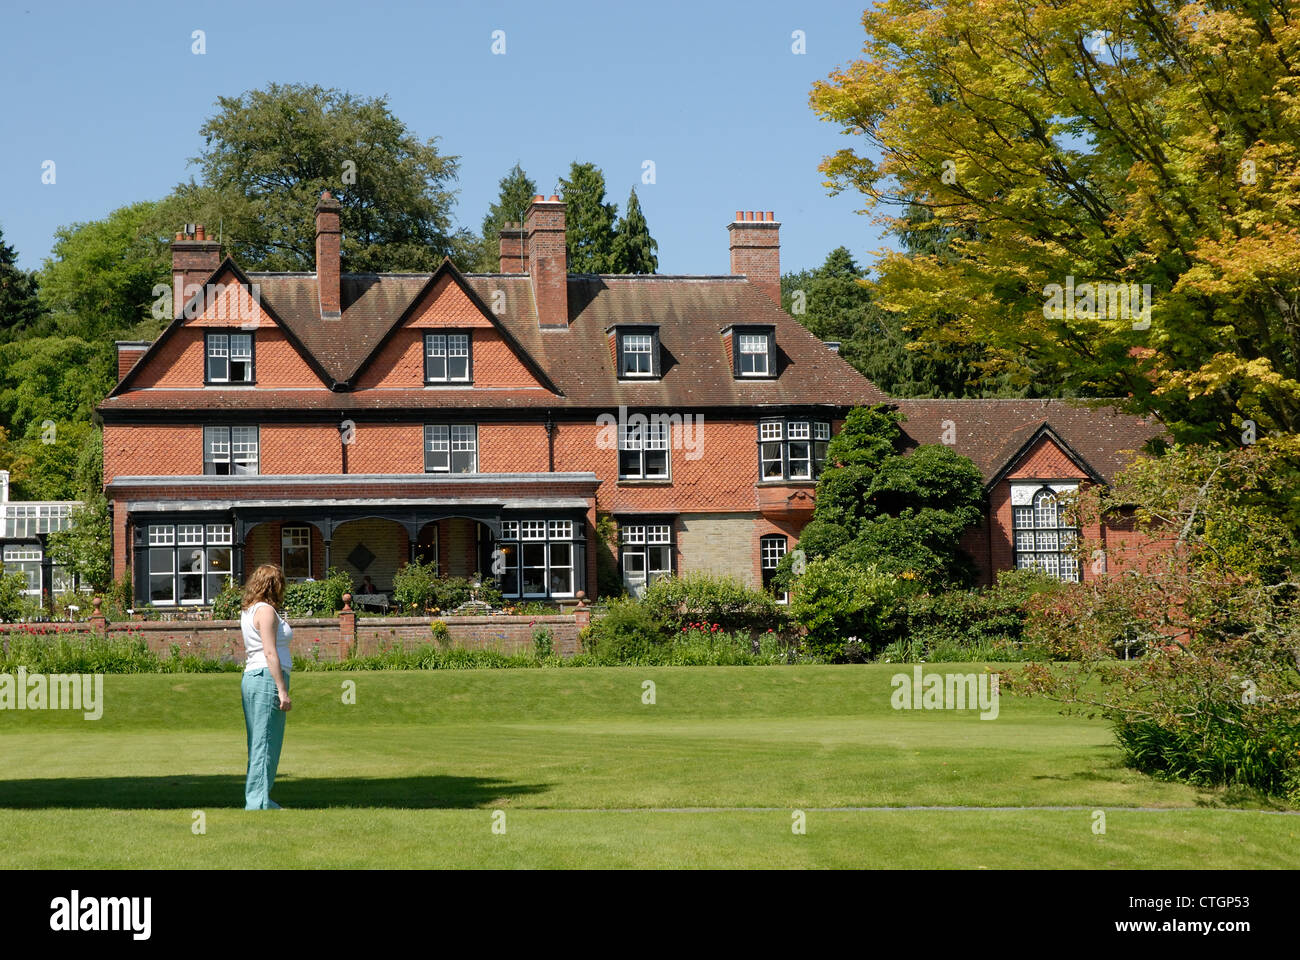 A woman at Hergest Croft Gardens, Kington, Herefordshire. - Stock Image